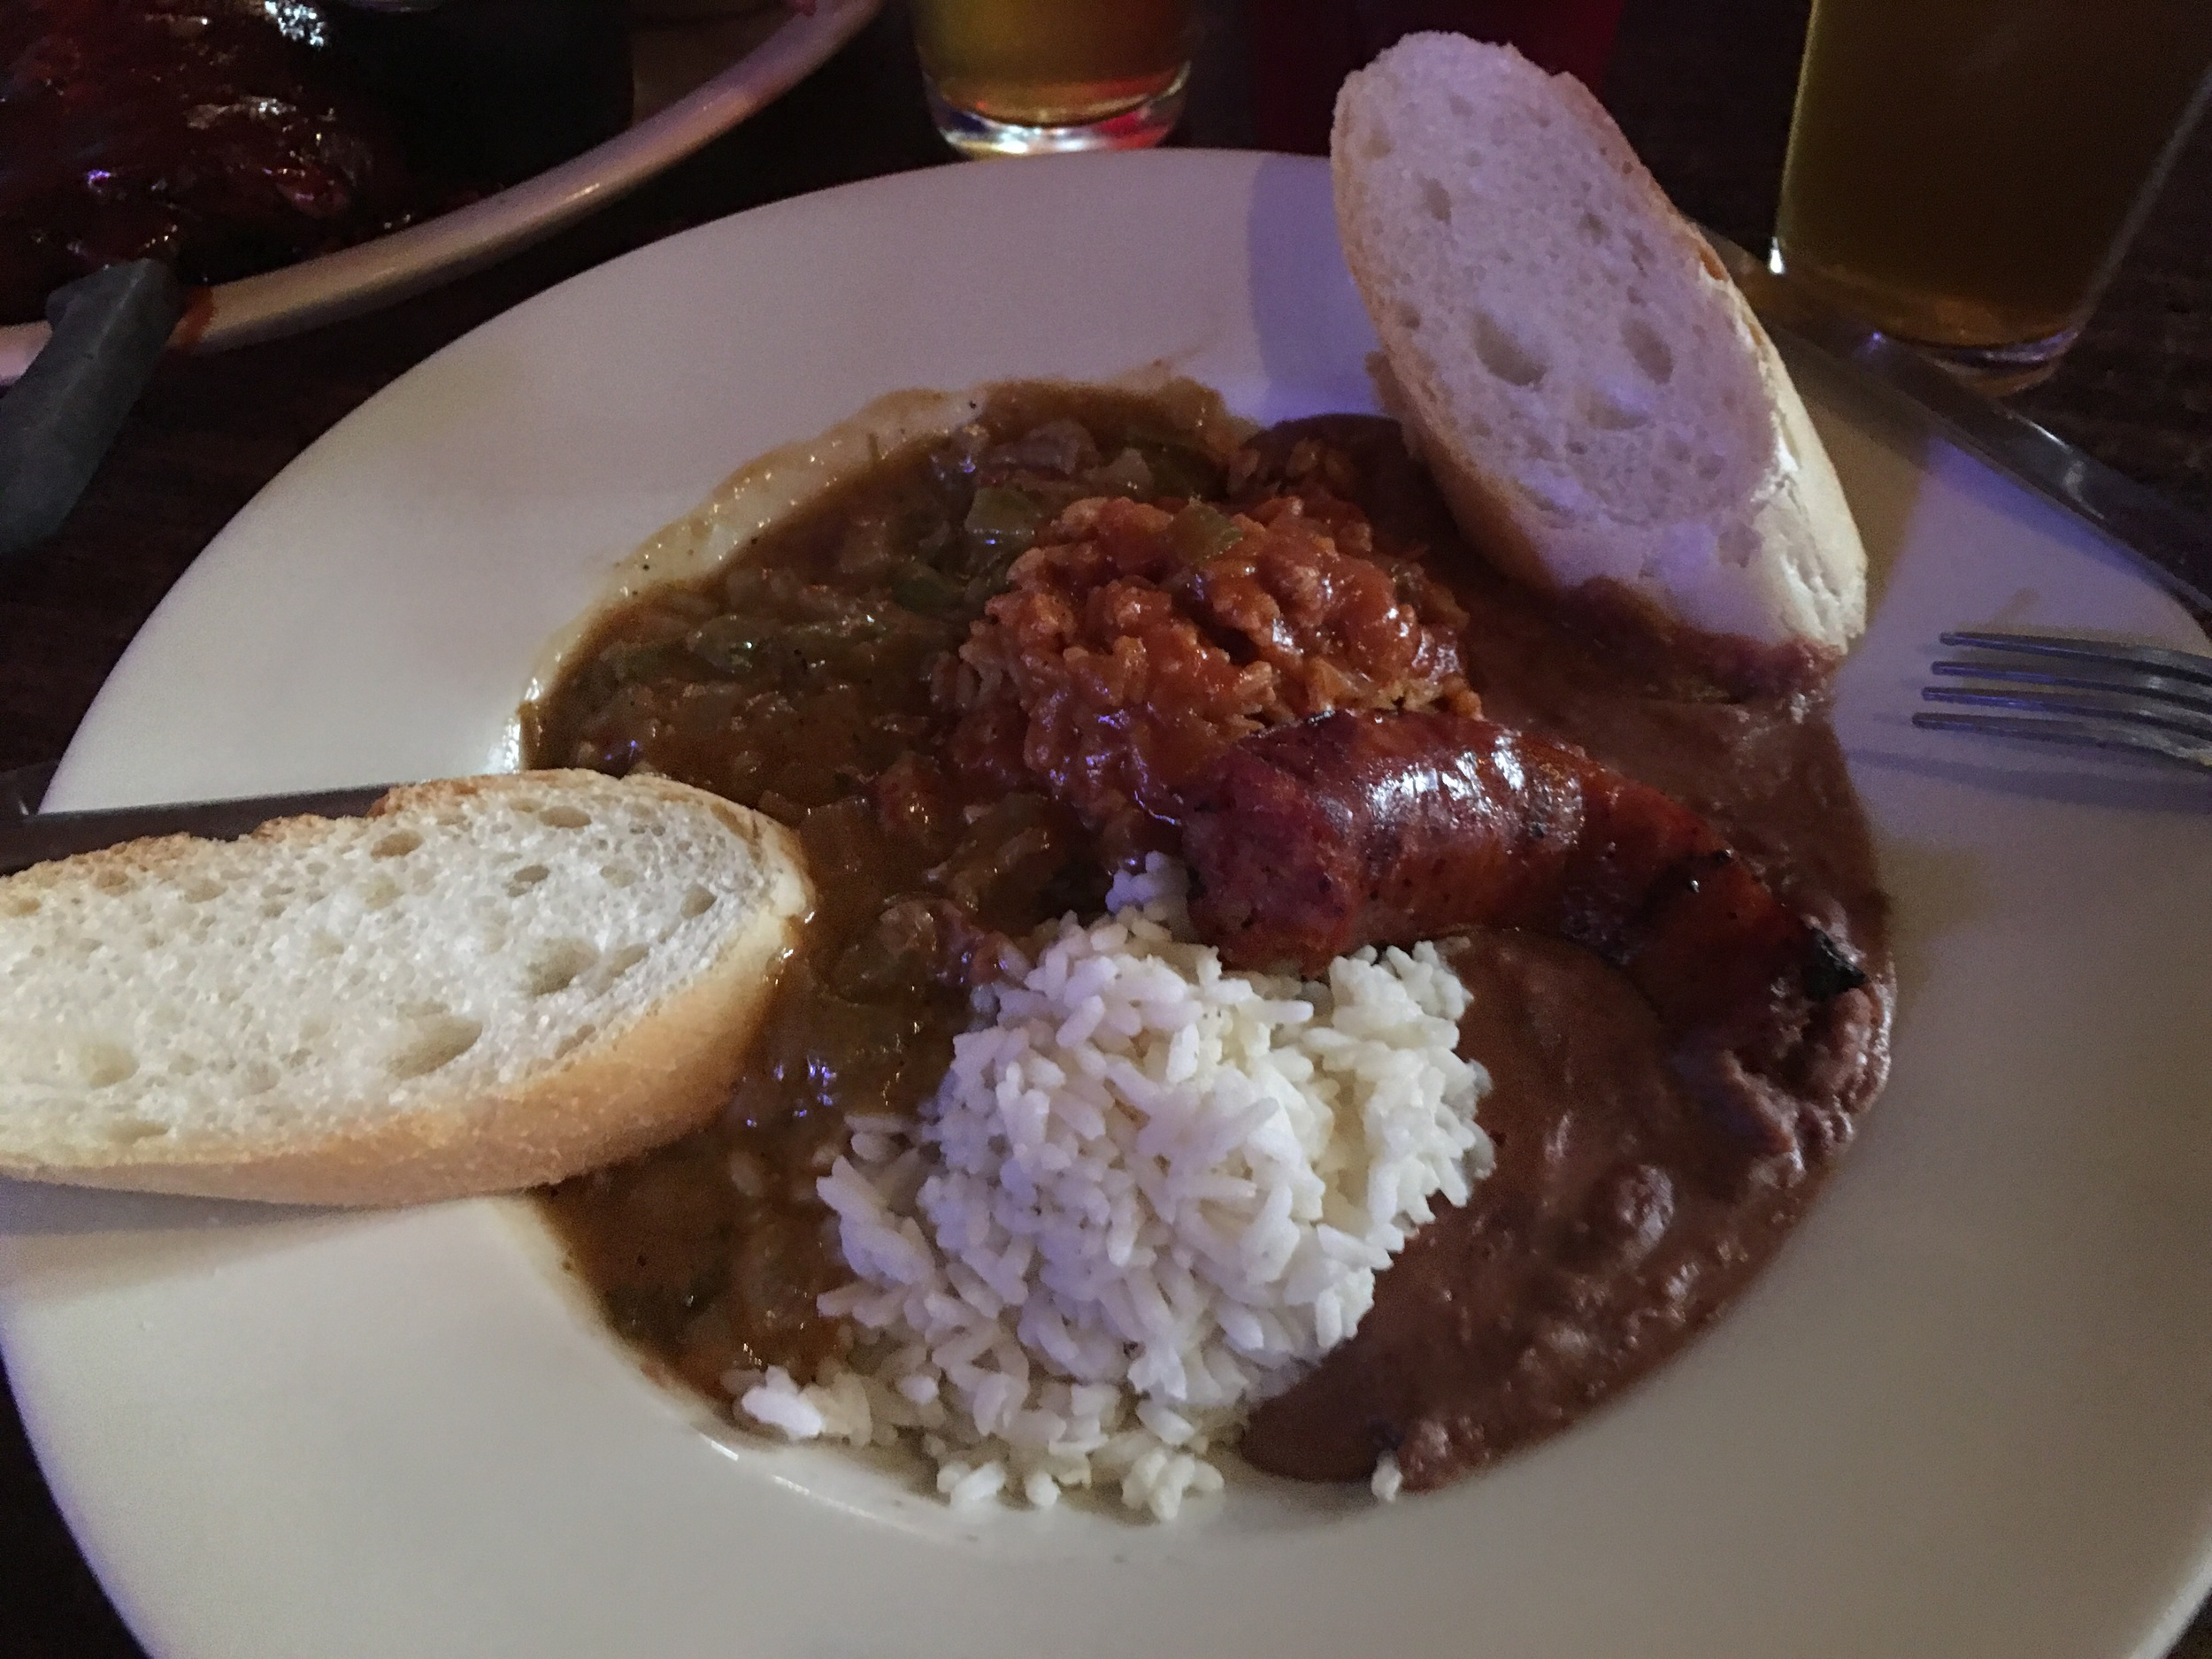 Red beans & rice, gumbo,etouffe, andouille sausage & rice: a taste of New Orleans.